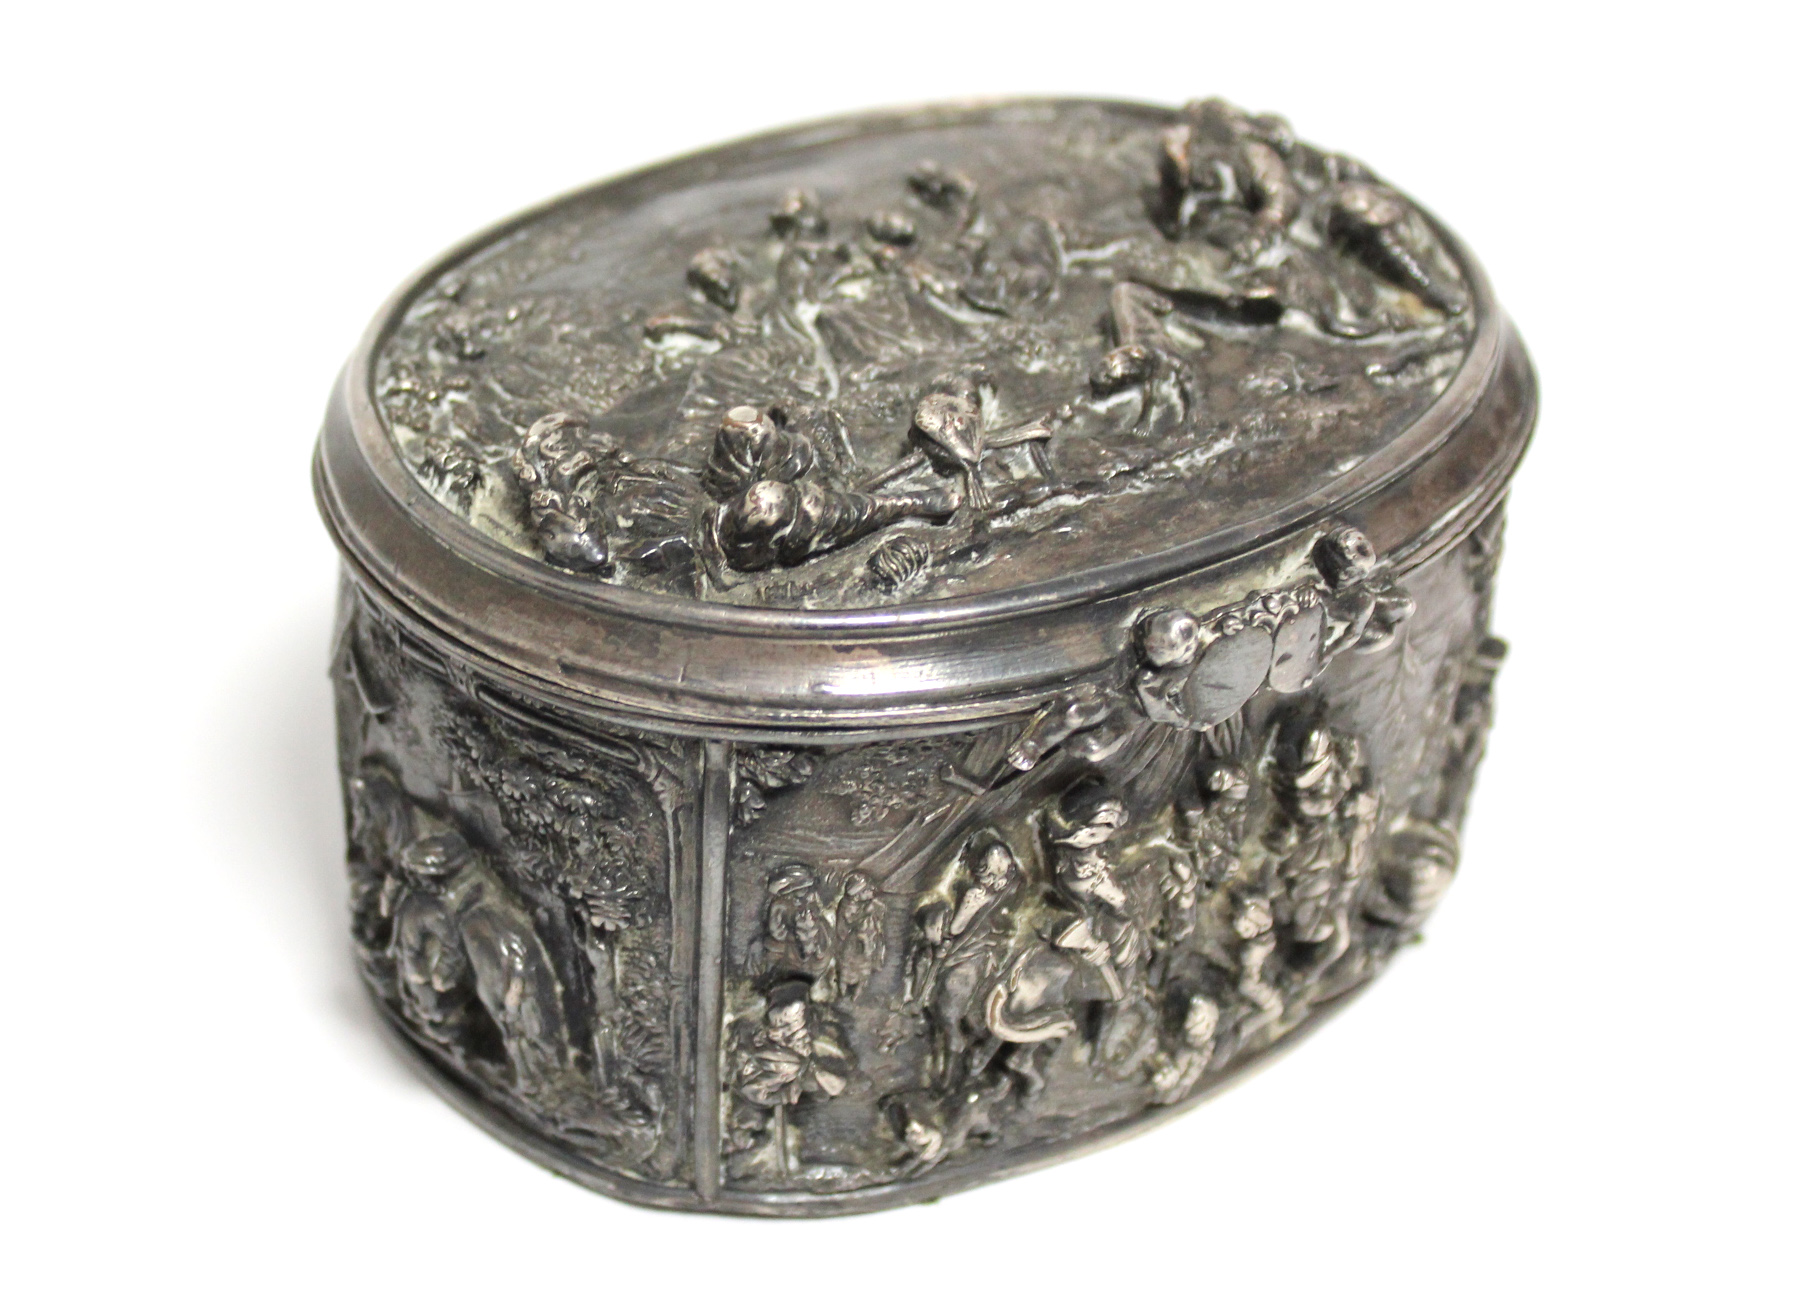 A continental white metal oval box, decorated in relief with scenes of huntsmen, figures & animals - Image 7 of 9